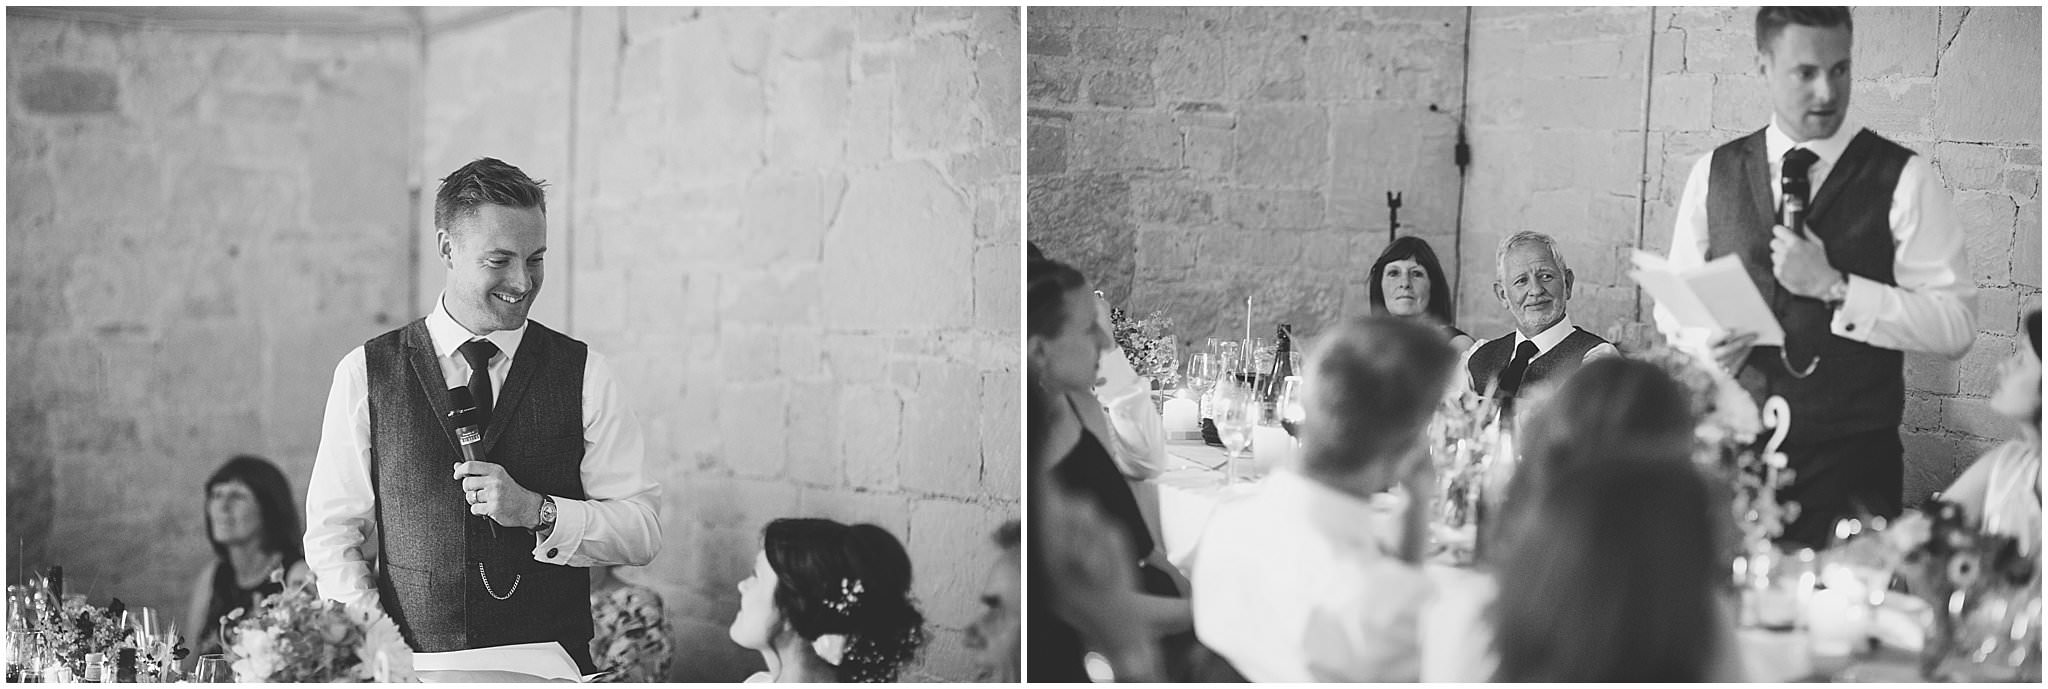 fay & tim wedding at ashley wood farm_0486